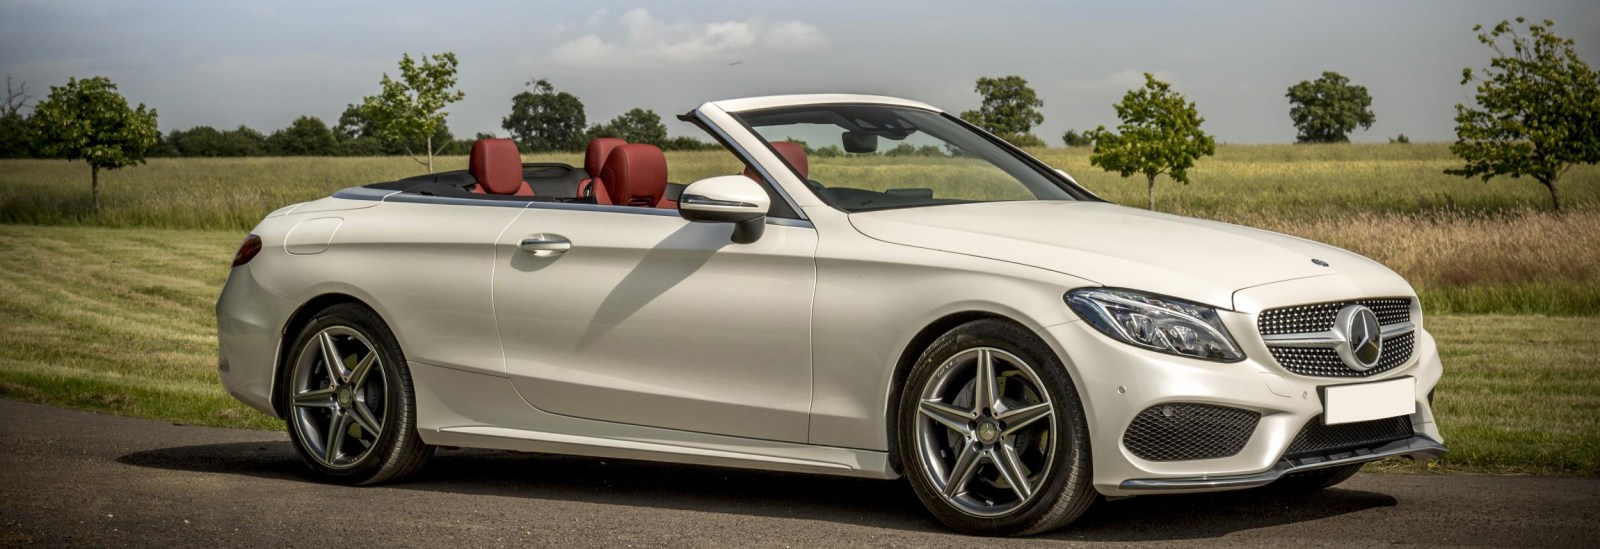 Le Meilleur The Best 4 Seater Convertibles Cabriolets On Sale Carwow Ce Mois Ci